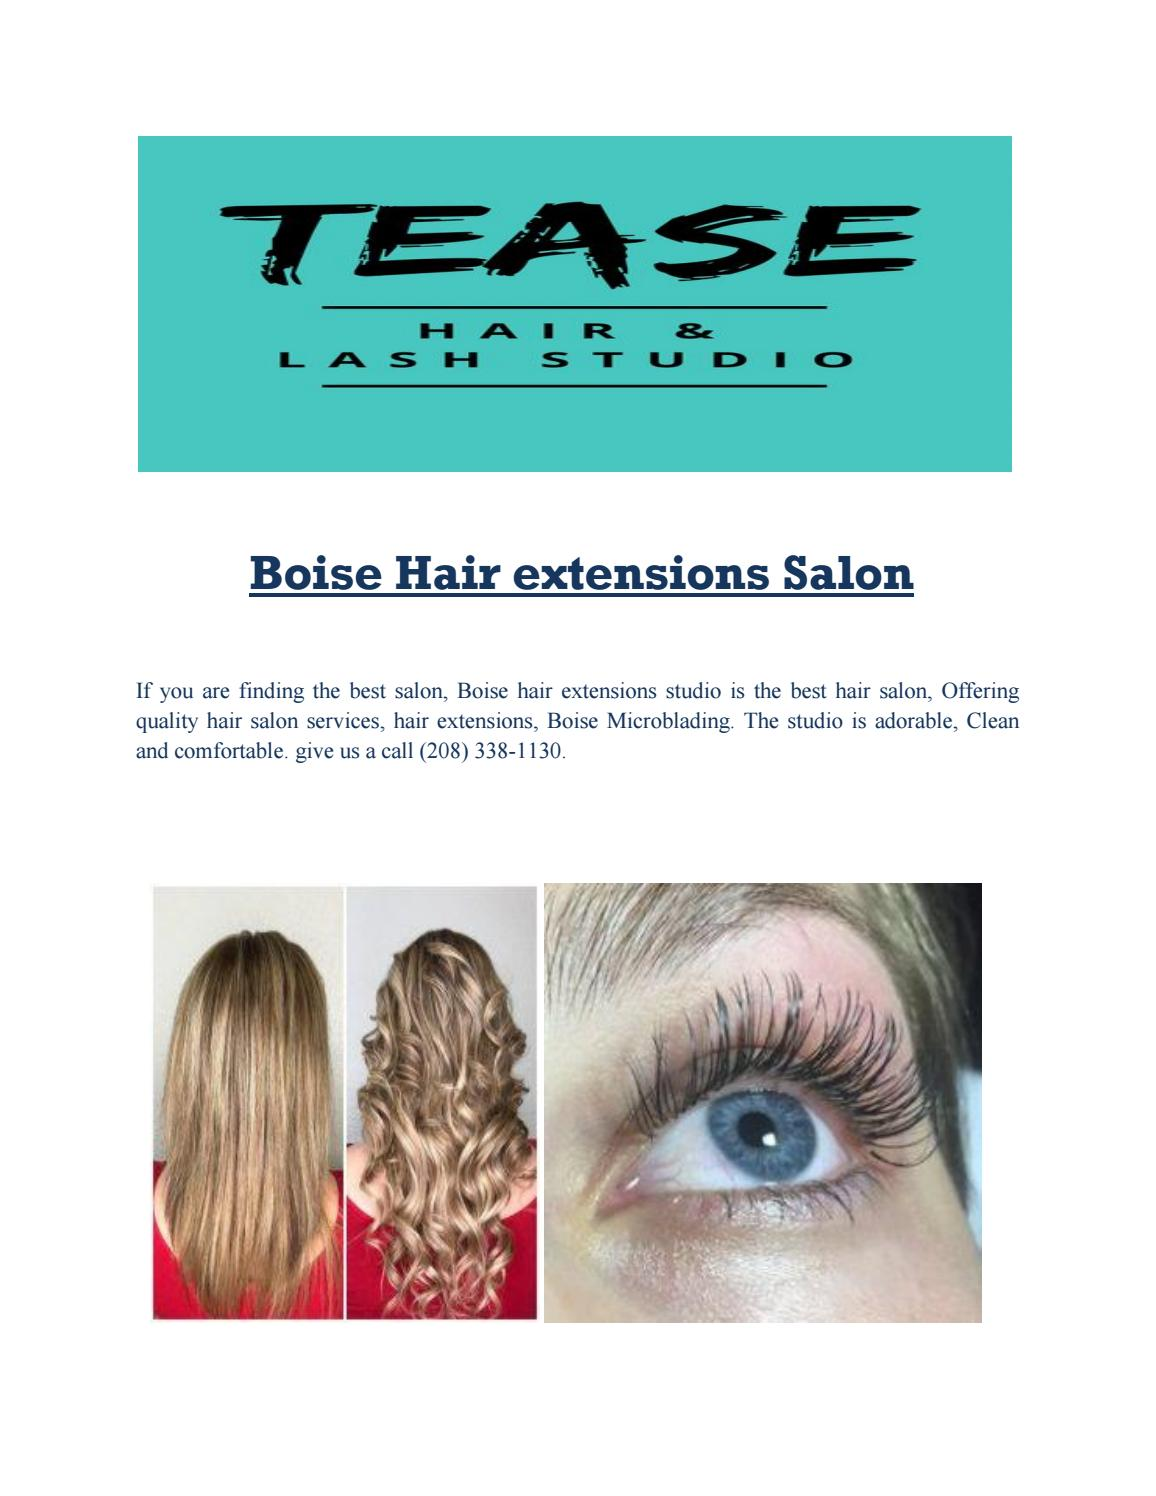 Boise Hair Extensions Salon By John Cina Issuu